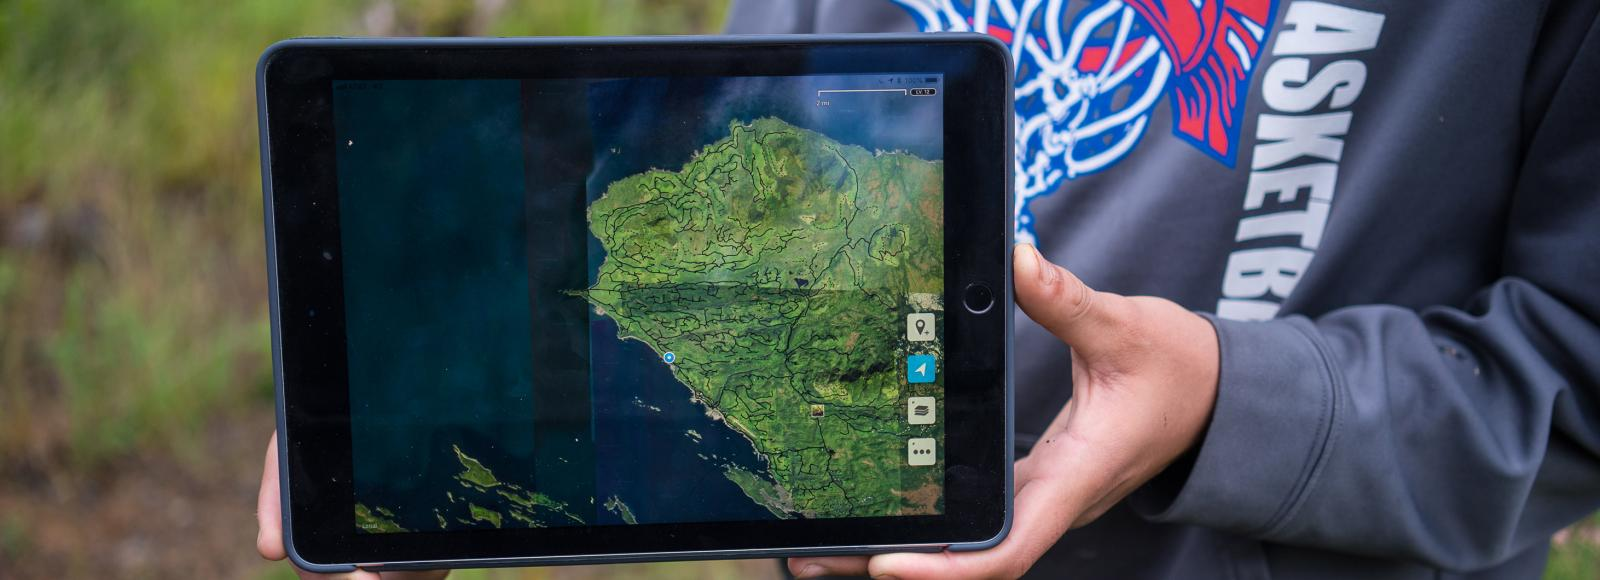 Screen of an electronic tablet, held by a person out of the picture, showing a green map of a peninsula.